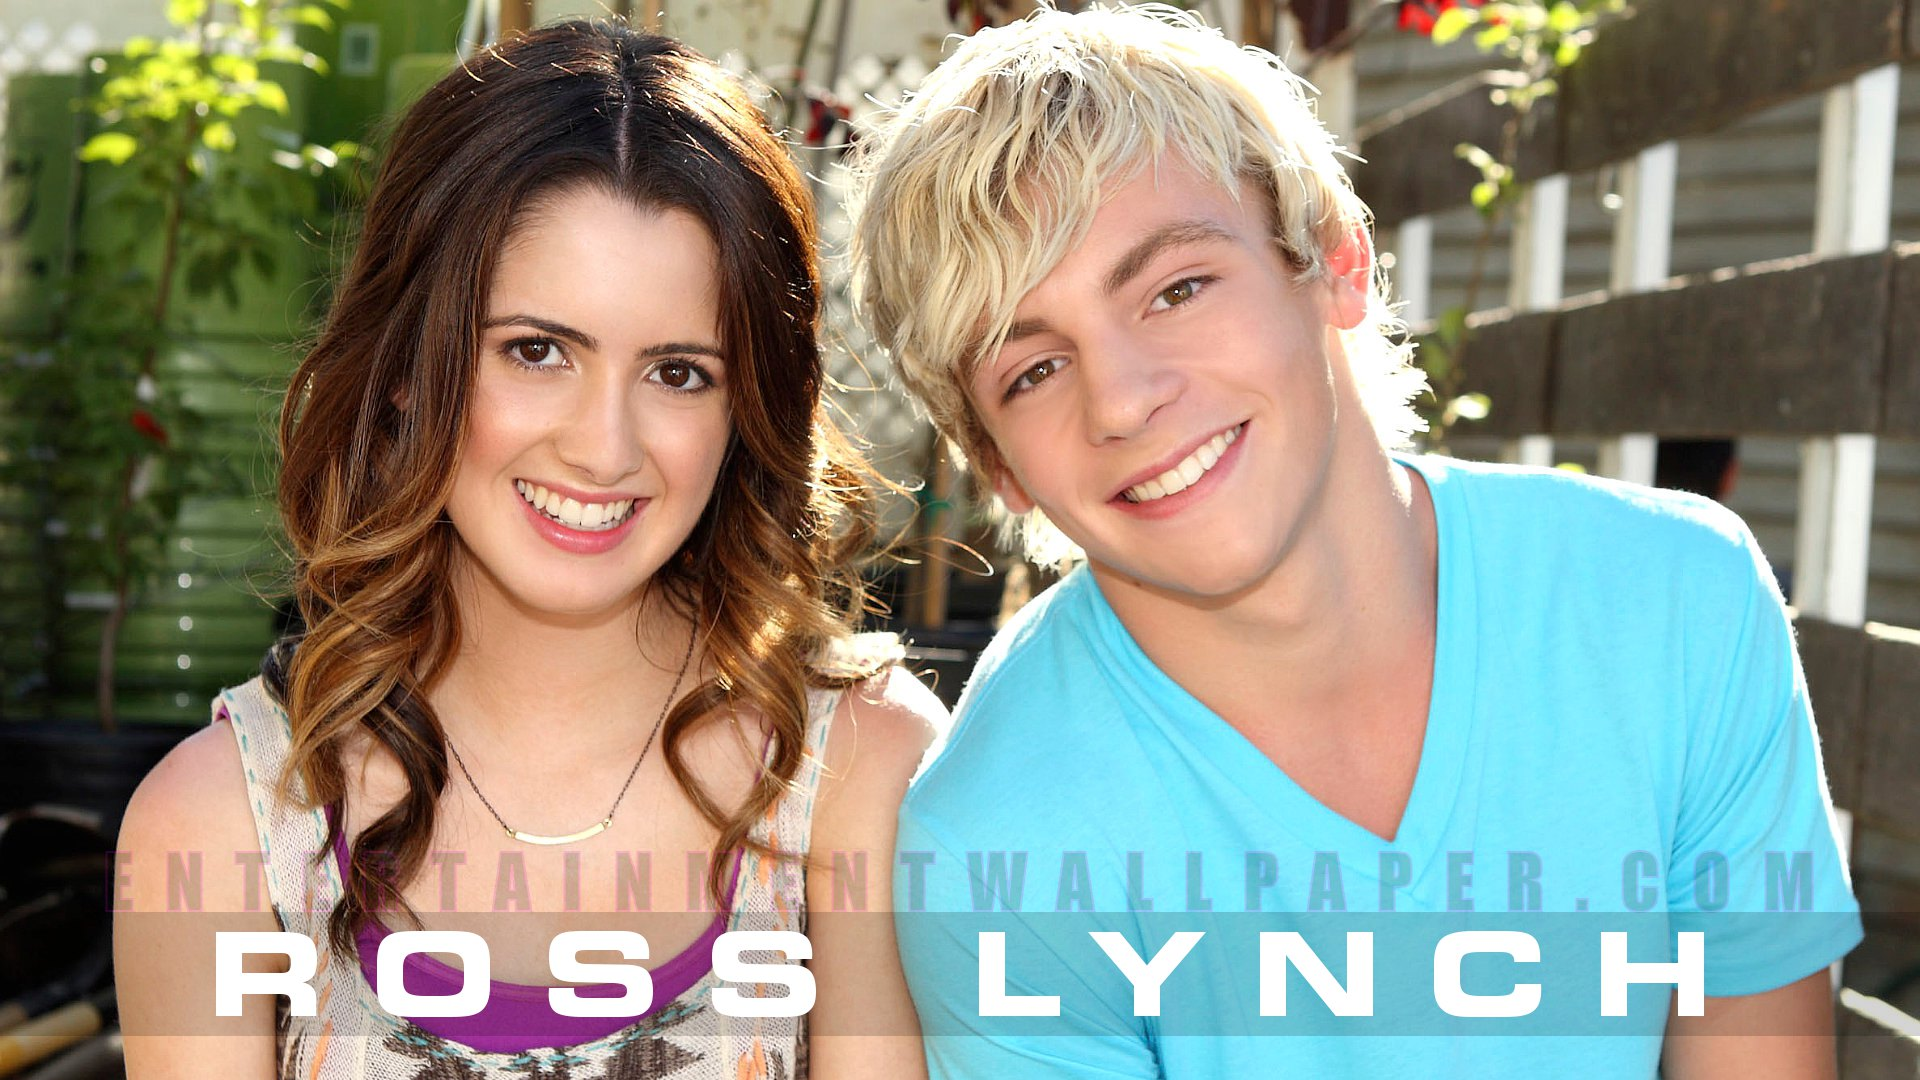 Laura en Ross dating 2015